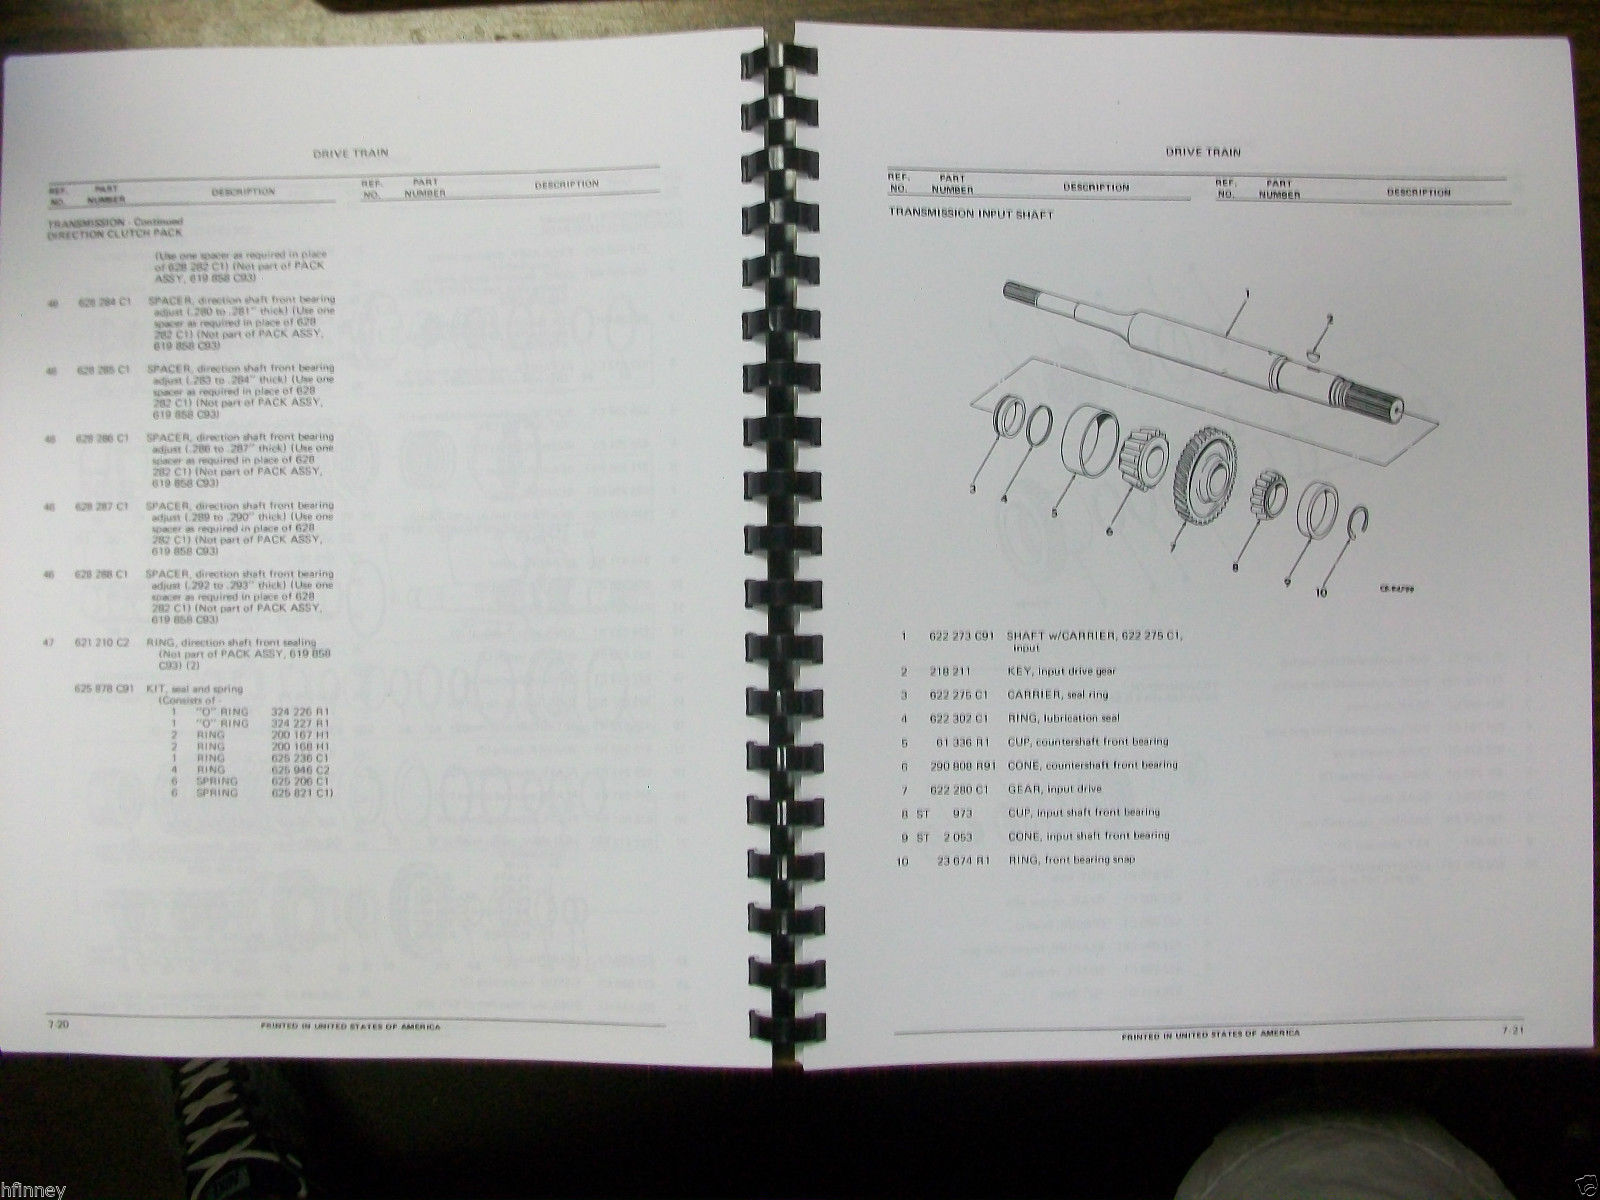 International Dresser Td7e Repair Manual